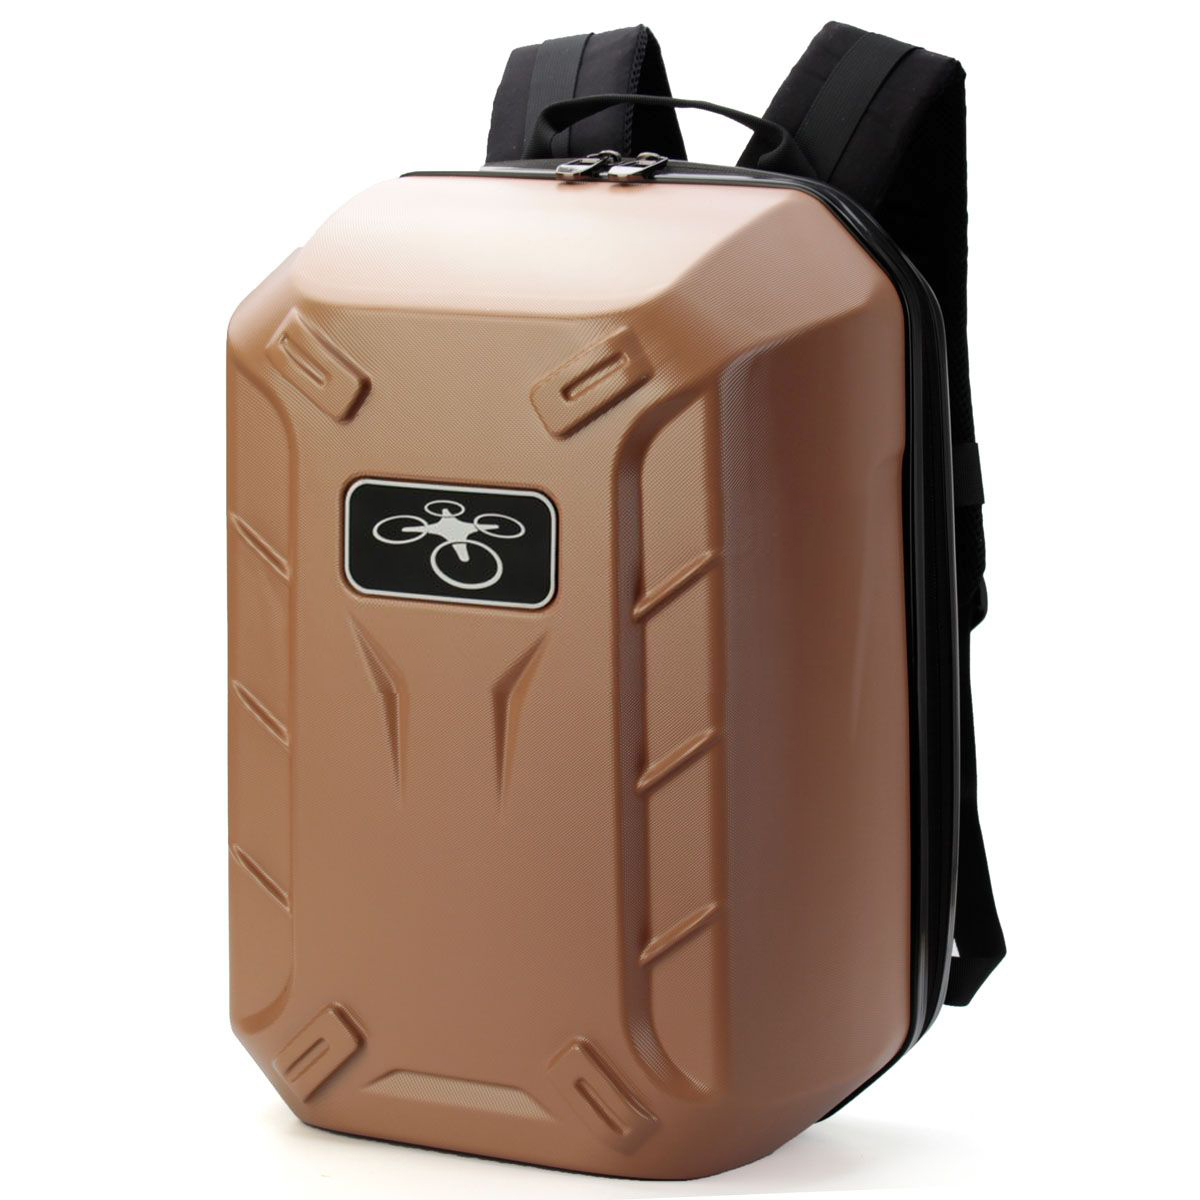 Traveling Waterproof Backpack Shoulder Bag Hard Shell Case For DJI Phantom 3Color:yellow Golden vsen traveling waterproof backpack shoulder bag hard shell case for dji phantom 3color army green